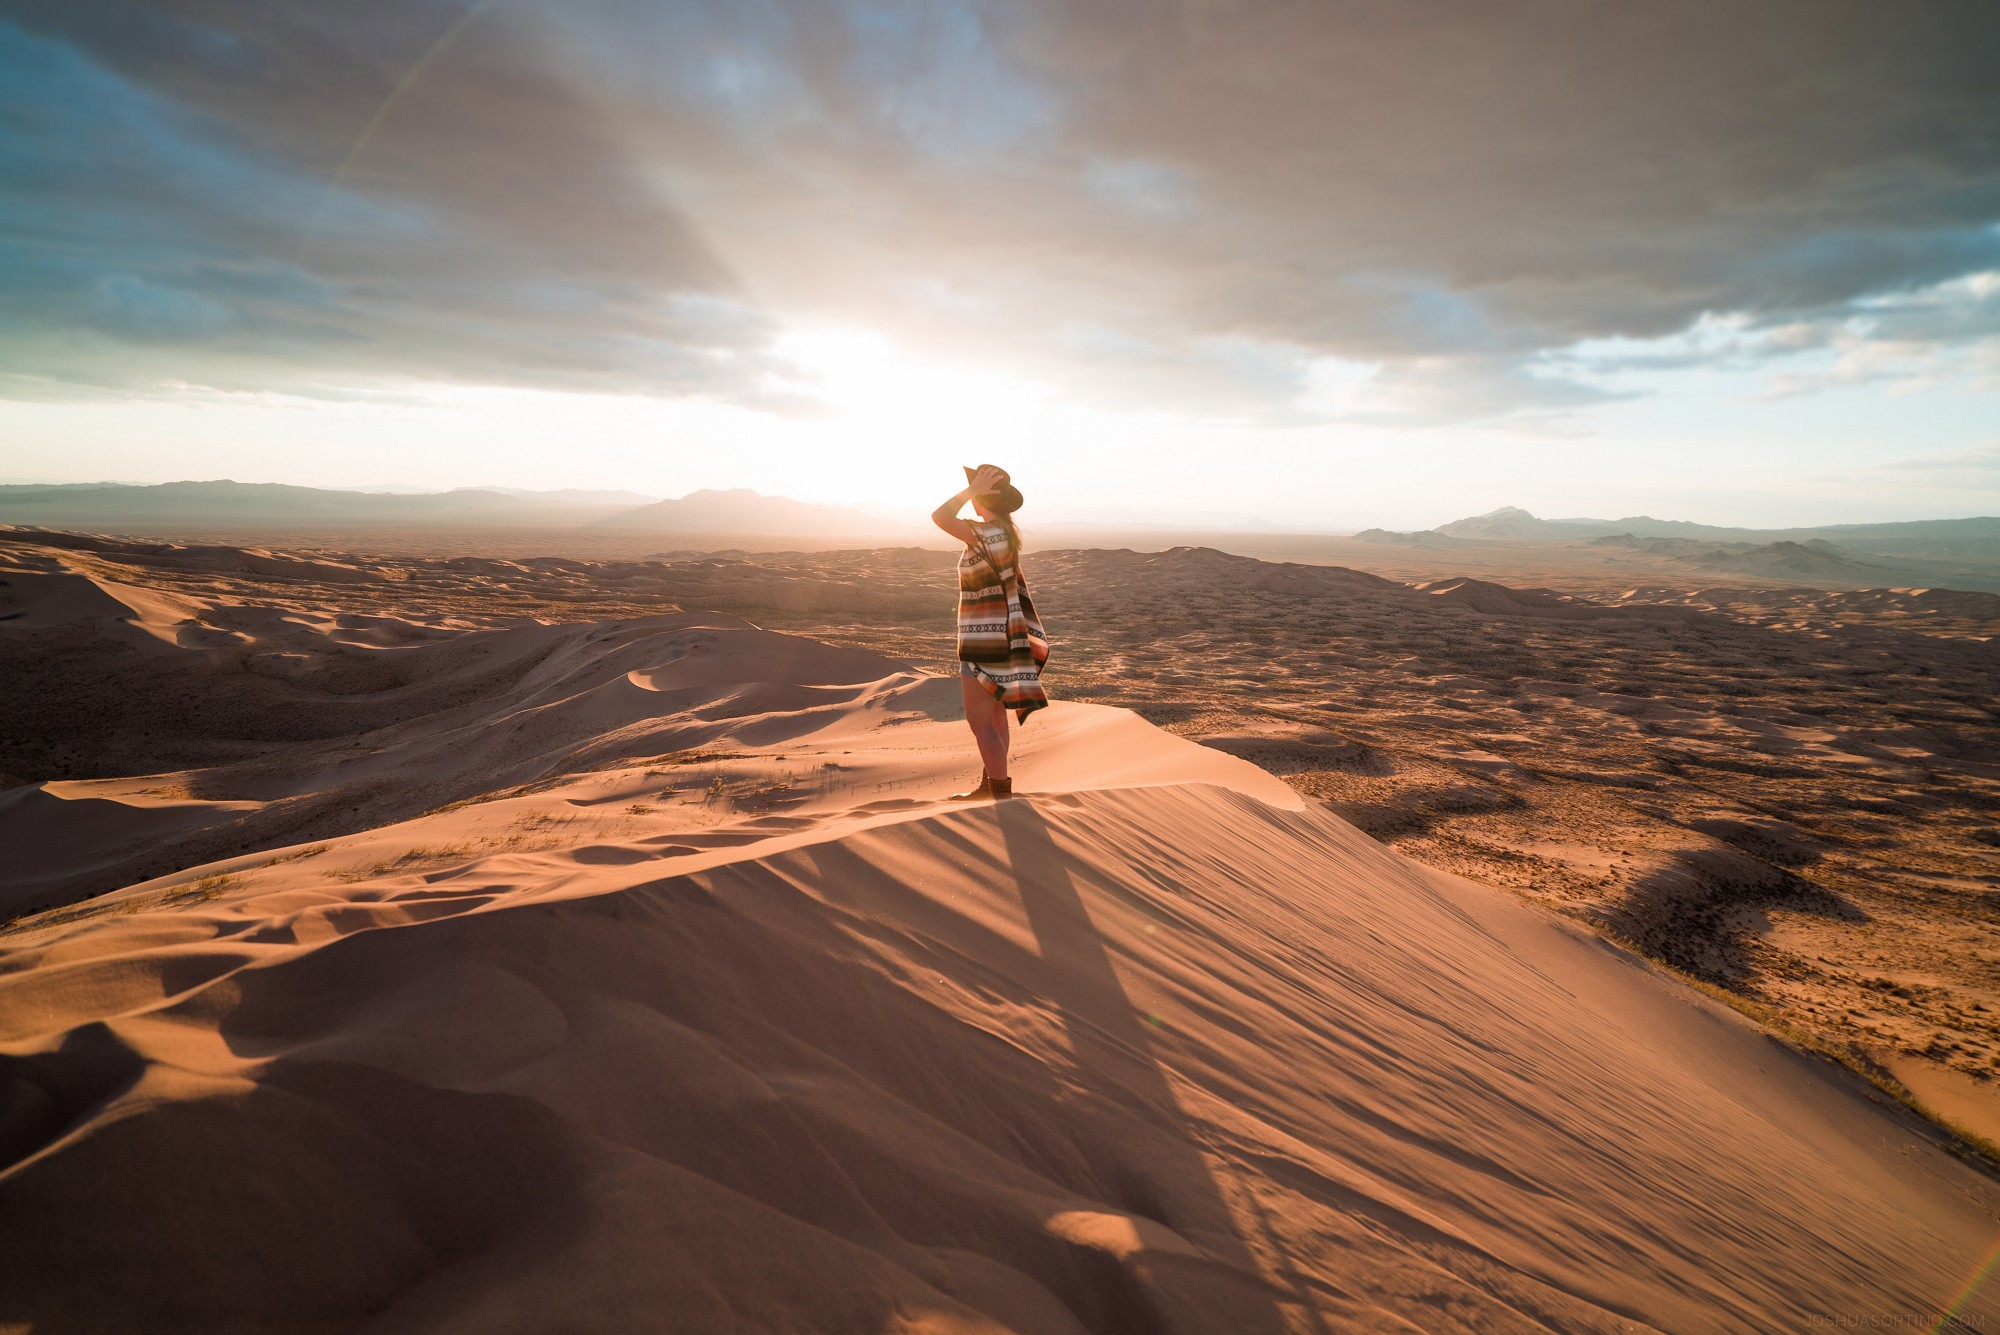 An inspiring writer on Medium looking over sand dunes at the setting sun in a desert.